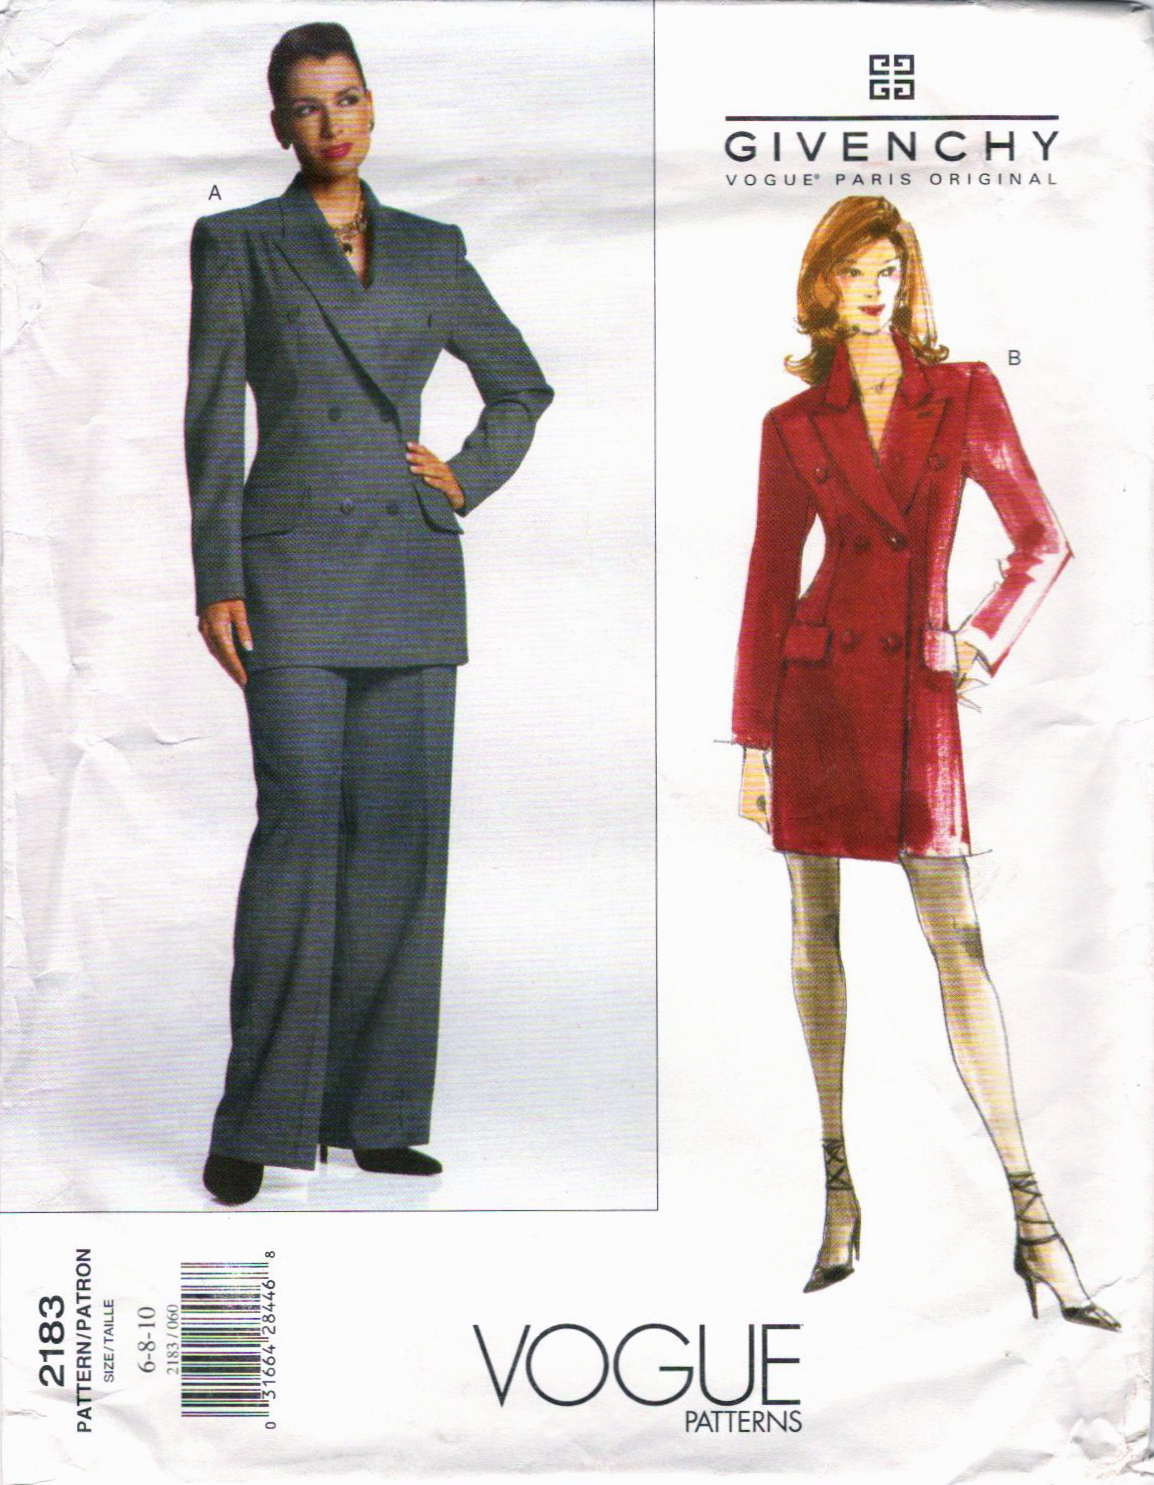 Alexander McQueen for Givenchy: Vogue Patterns, Part 1 ...